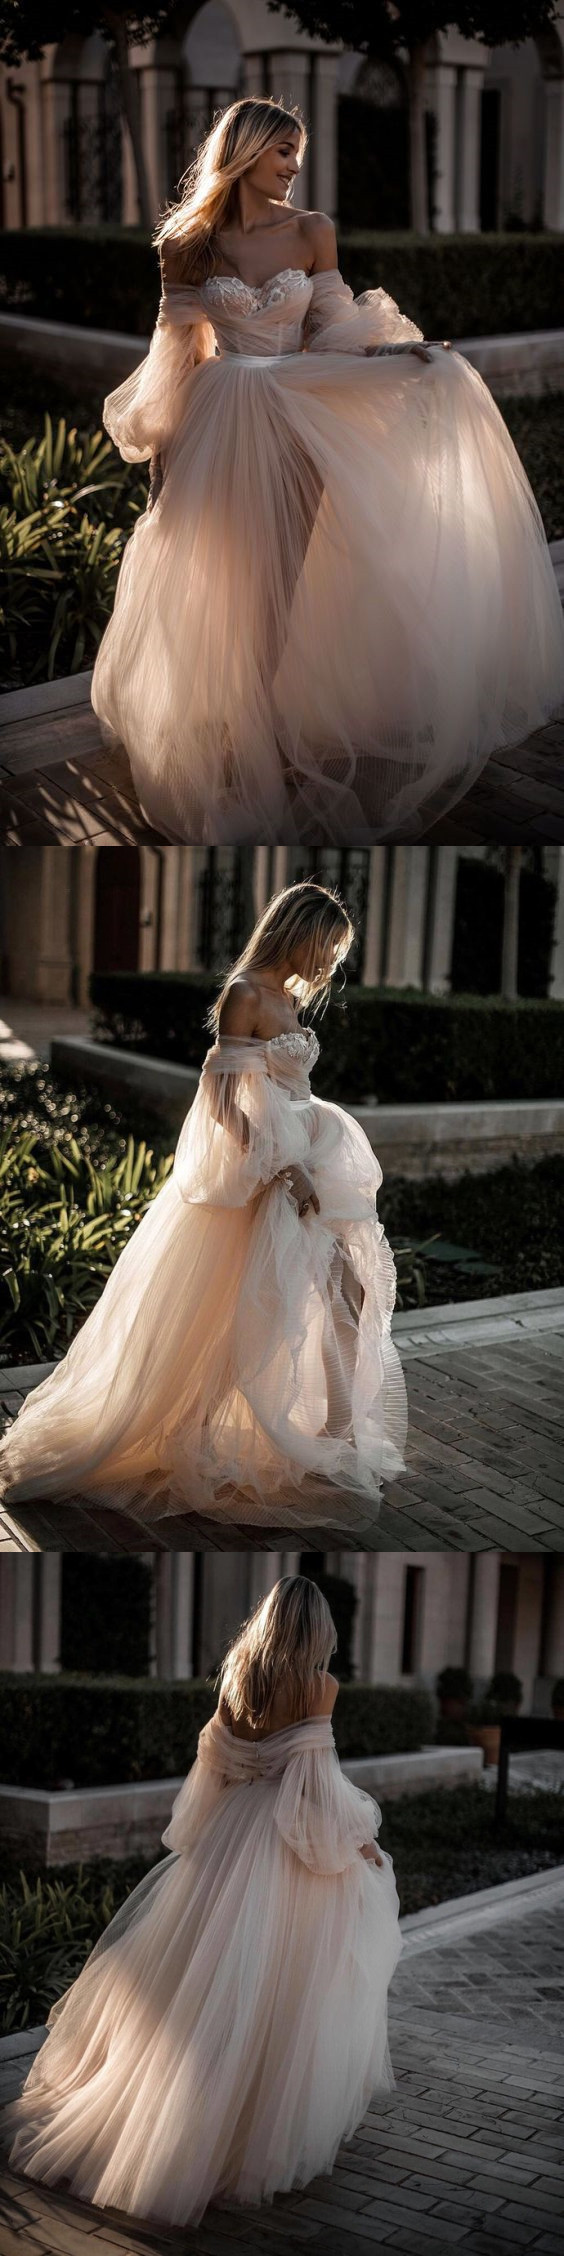 Champagne Off the Shoulder Tulle Wedding Dresses,Long Sleeves Bridal Dress,Lace